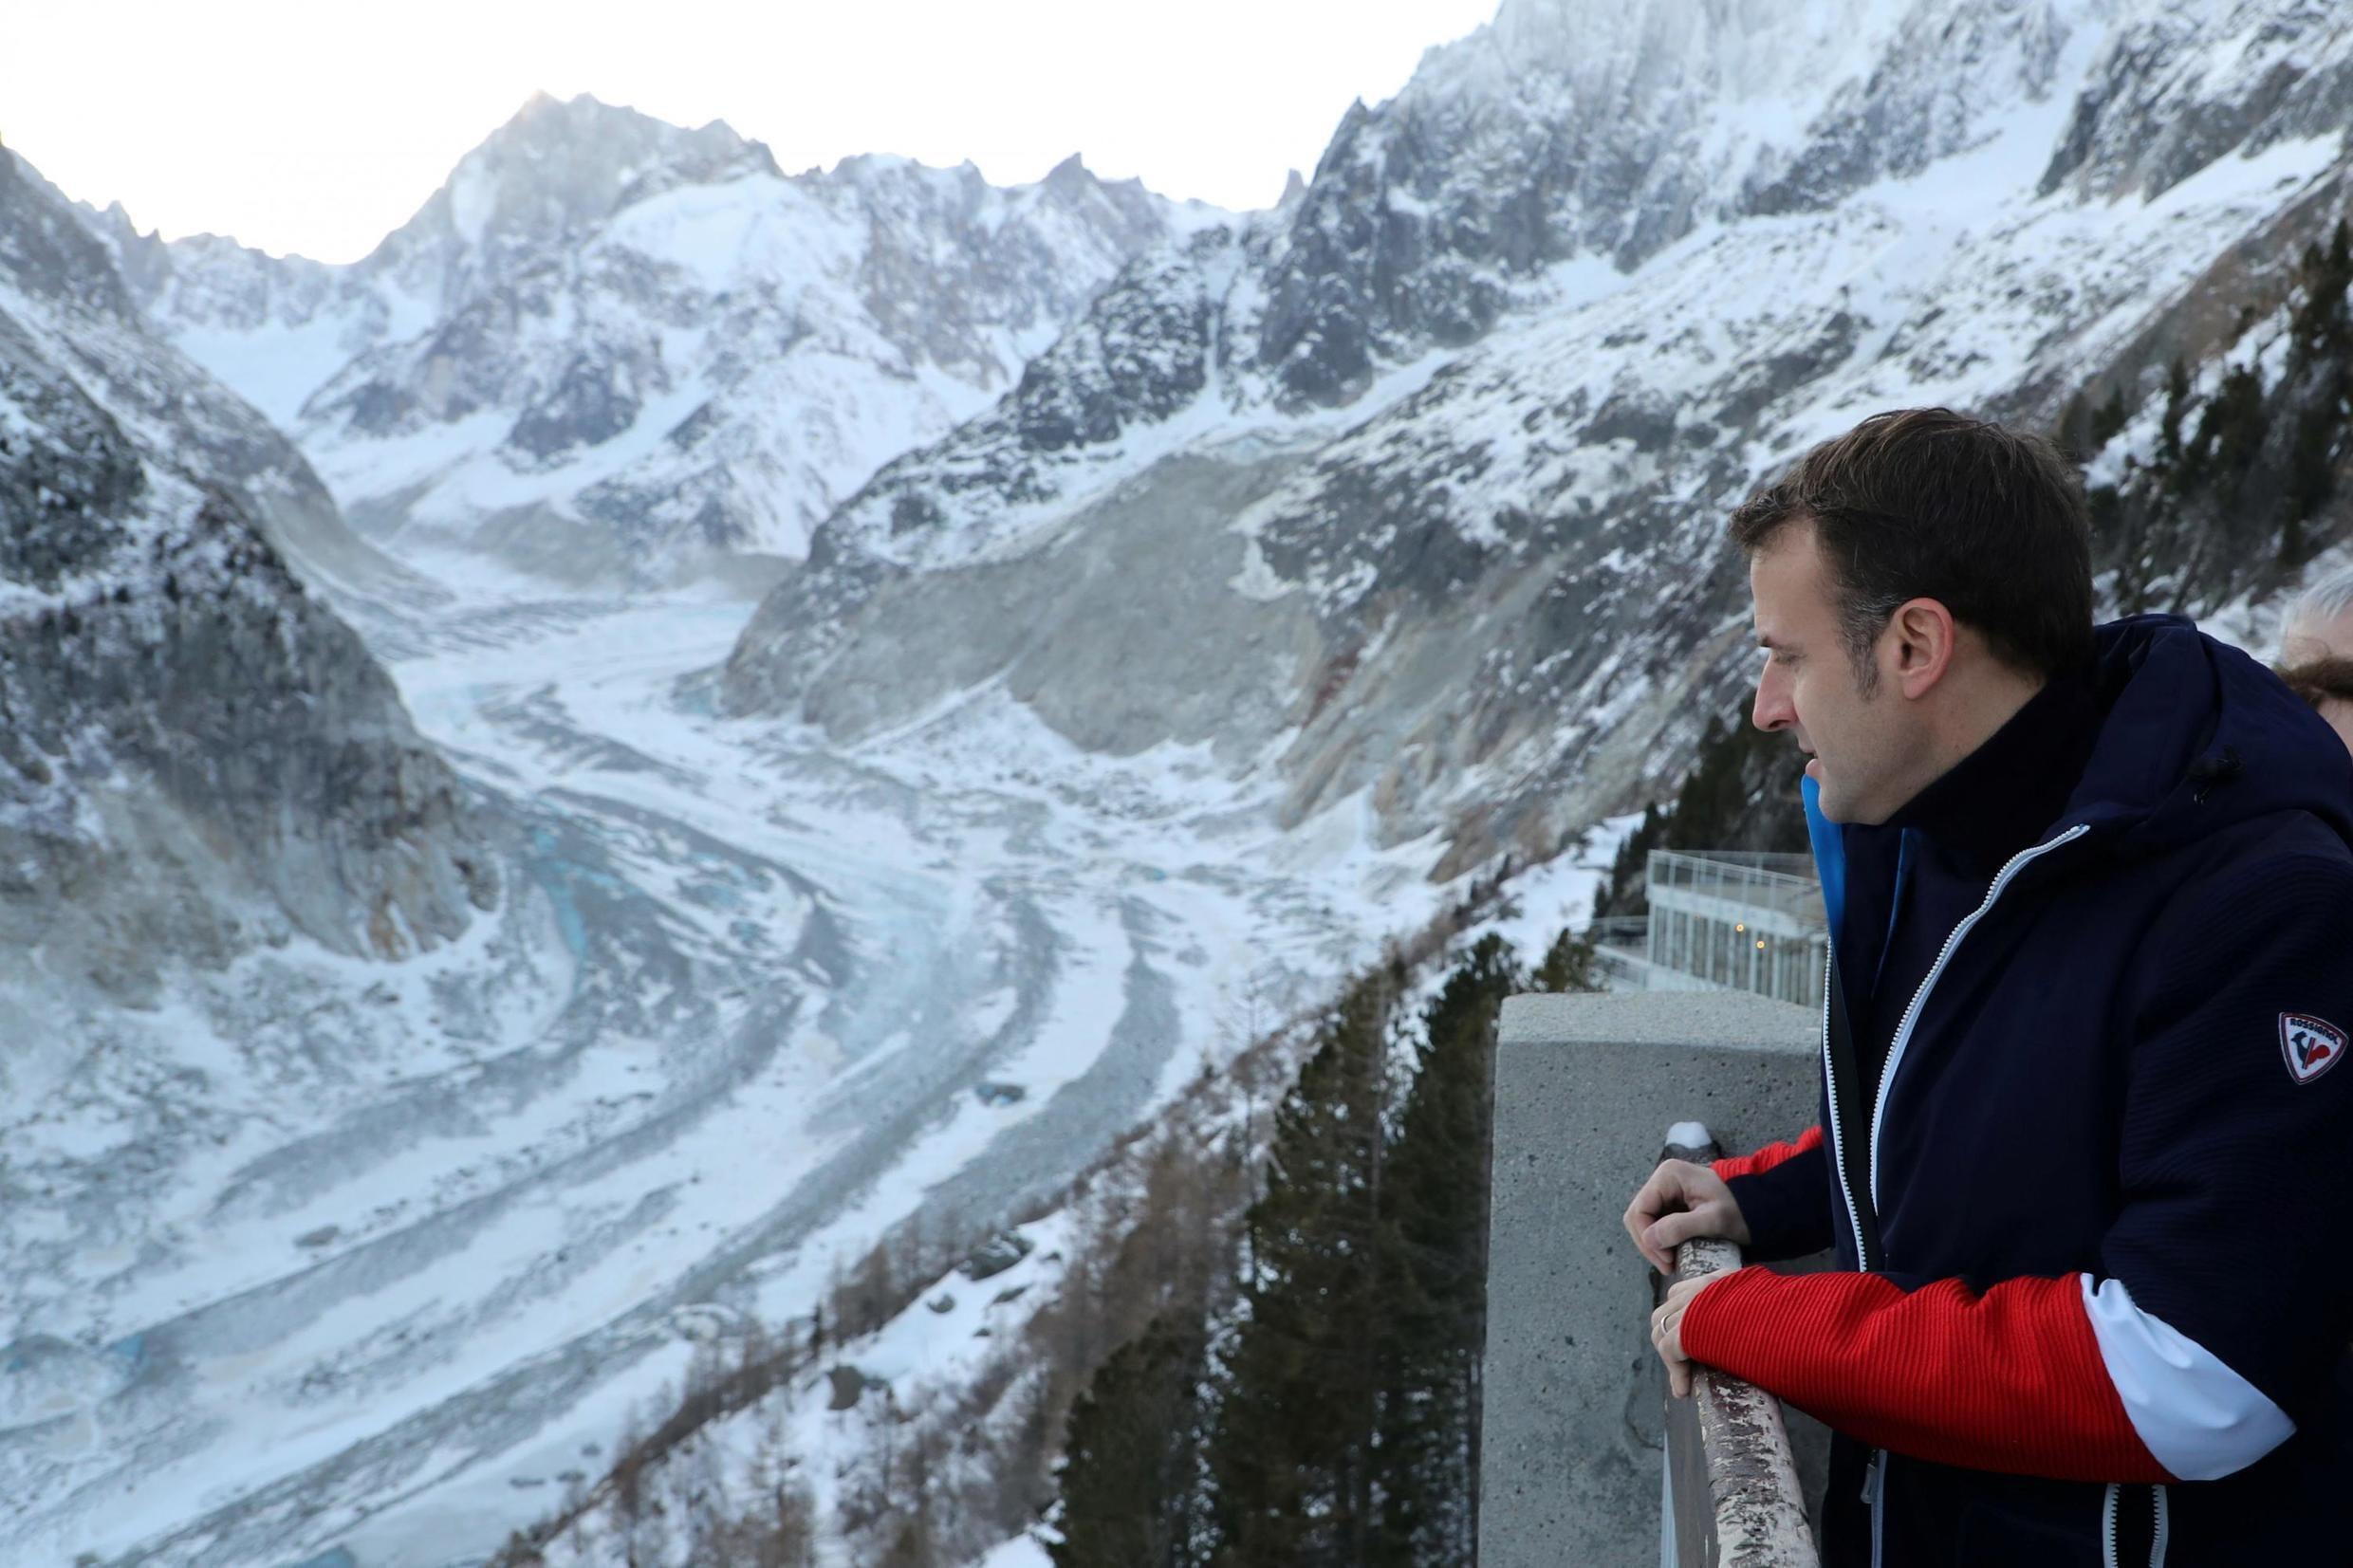 """Macron announced new protective measures for the """"Mer de Glace"""" (Sea of Ice) - France's largest glacier, which has shrunk dramatically in recent years - during a visit in February, 2020."""